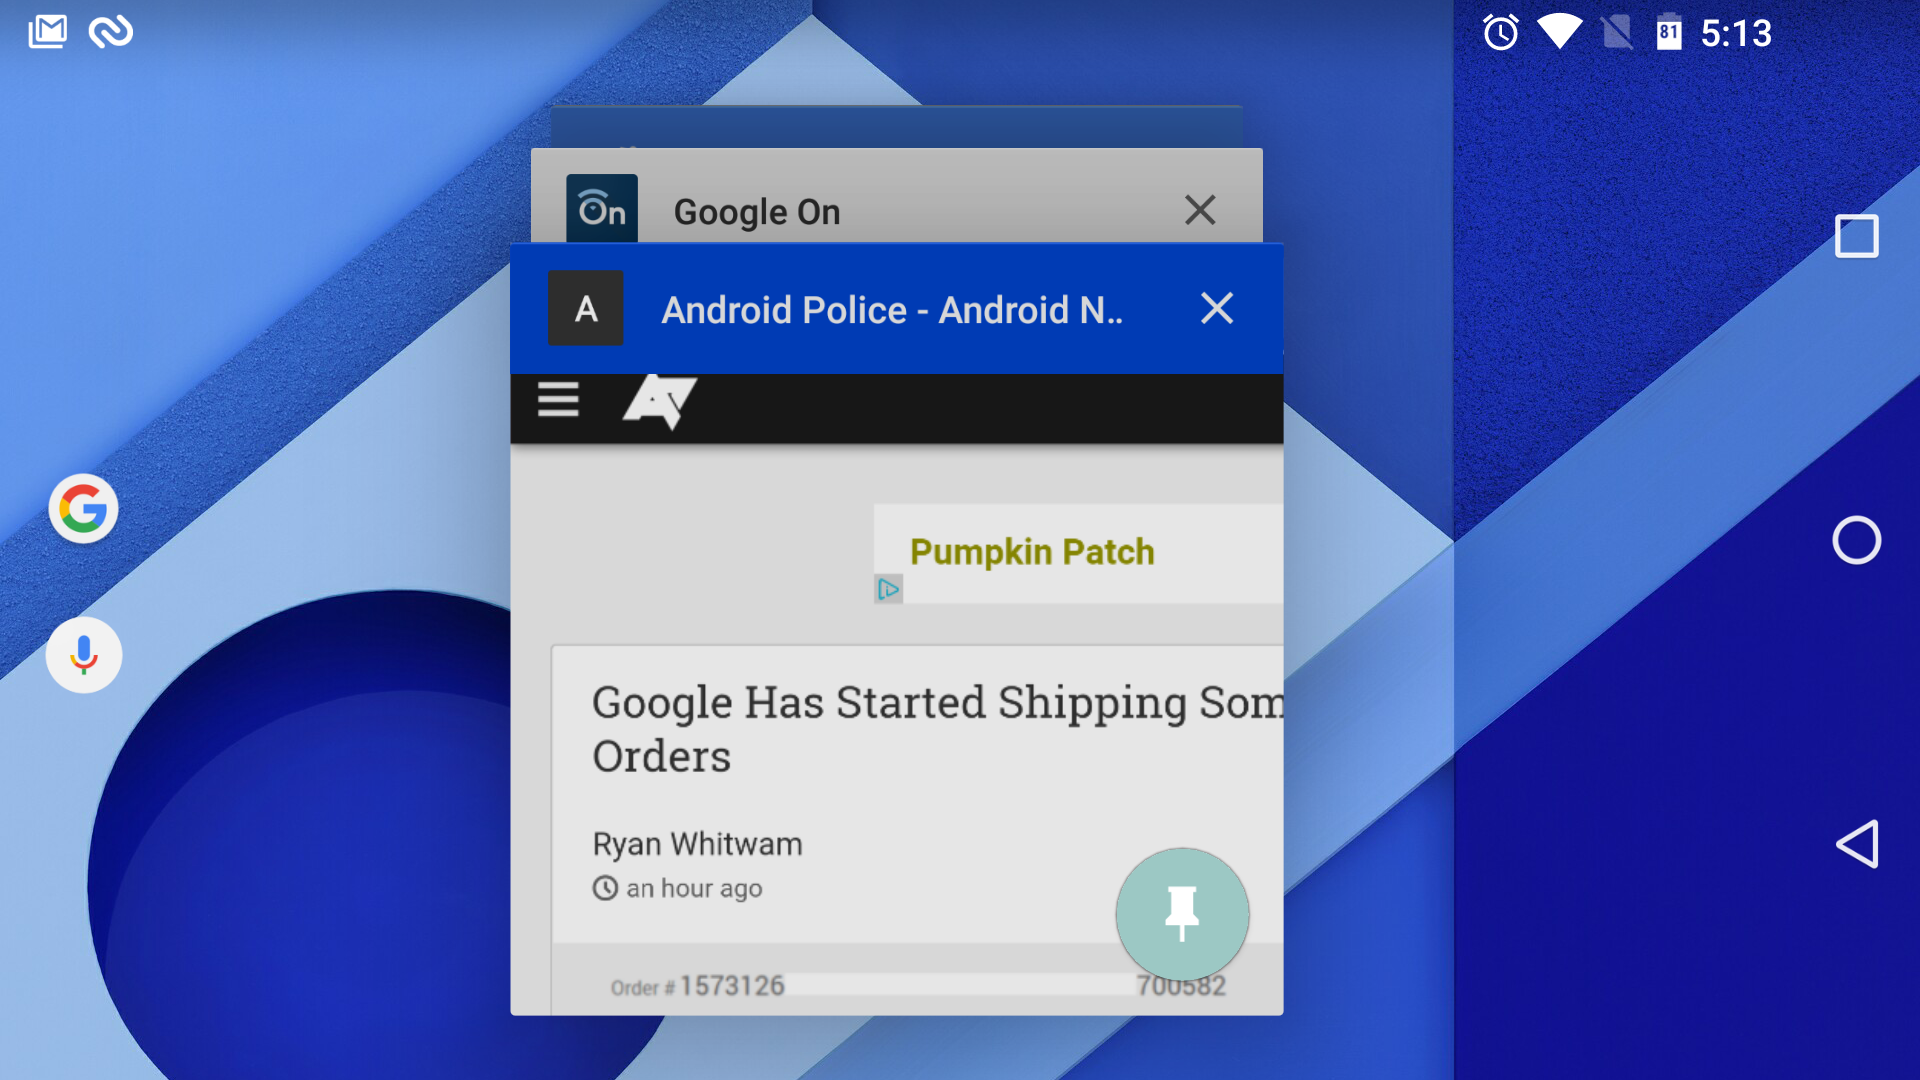 [Update: Mystery Solved] [Android 6.0 Feature Spotlight] App Info Menu Is Now Just A Tap Away From The Recent App List